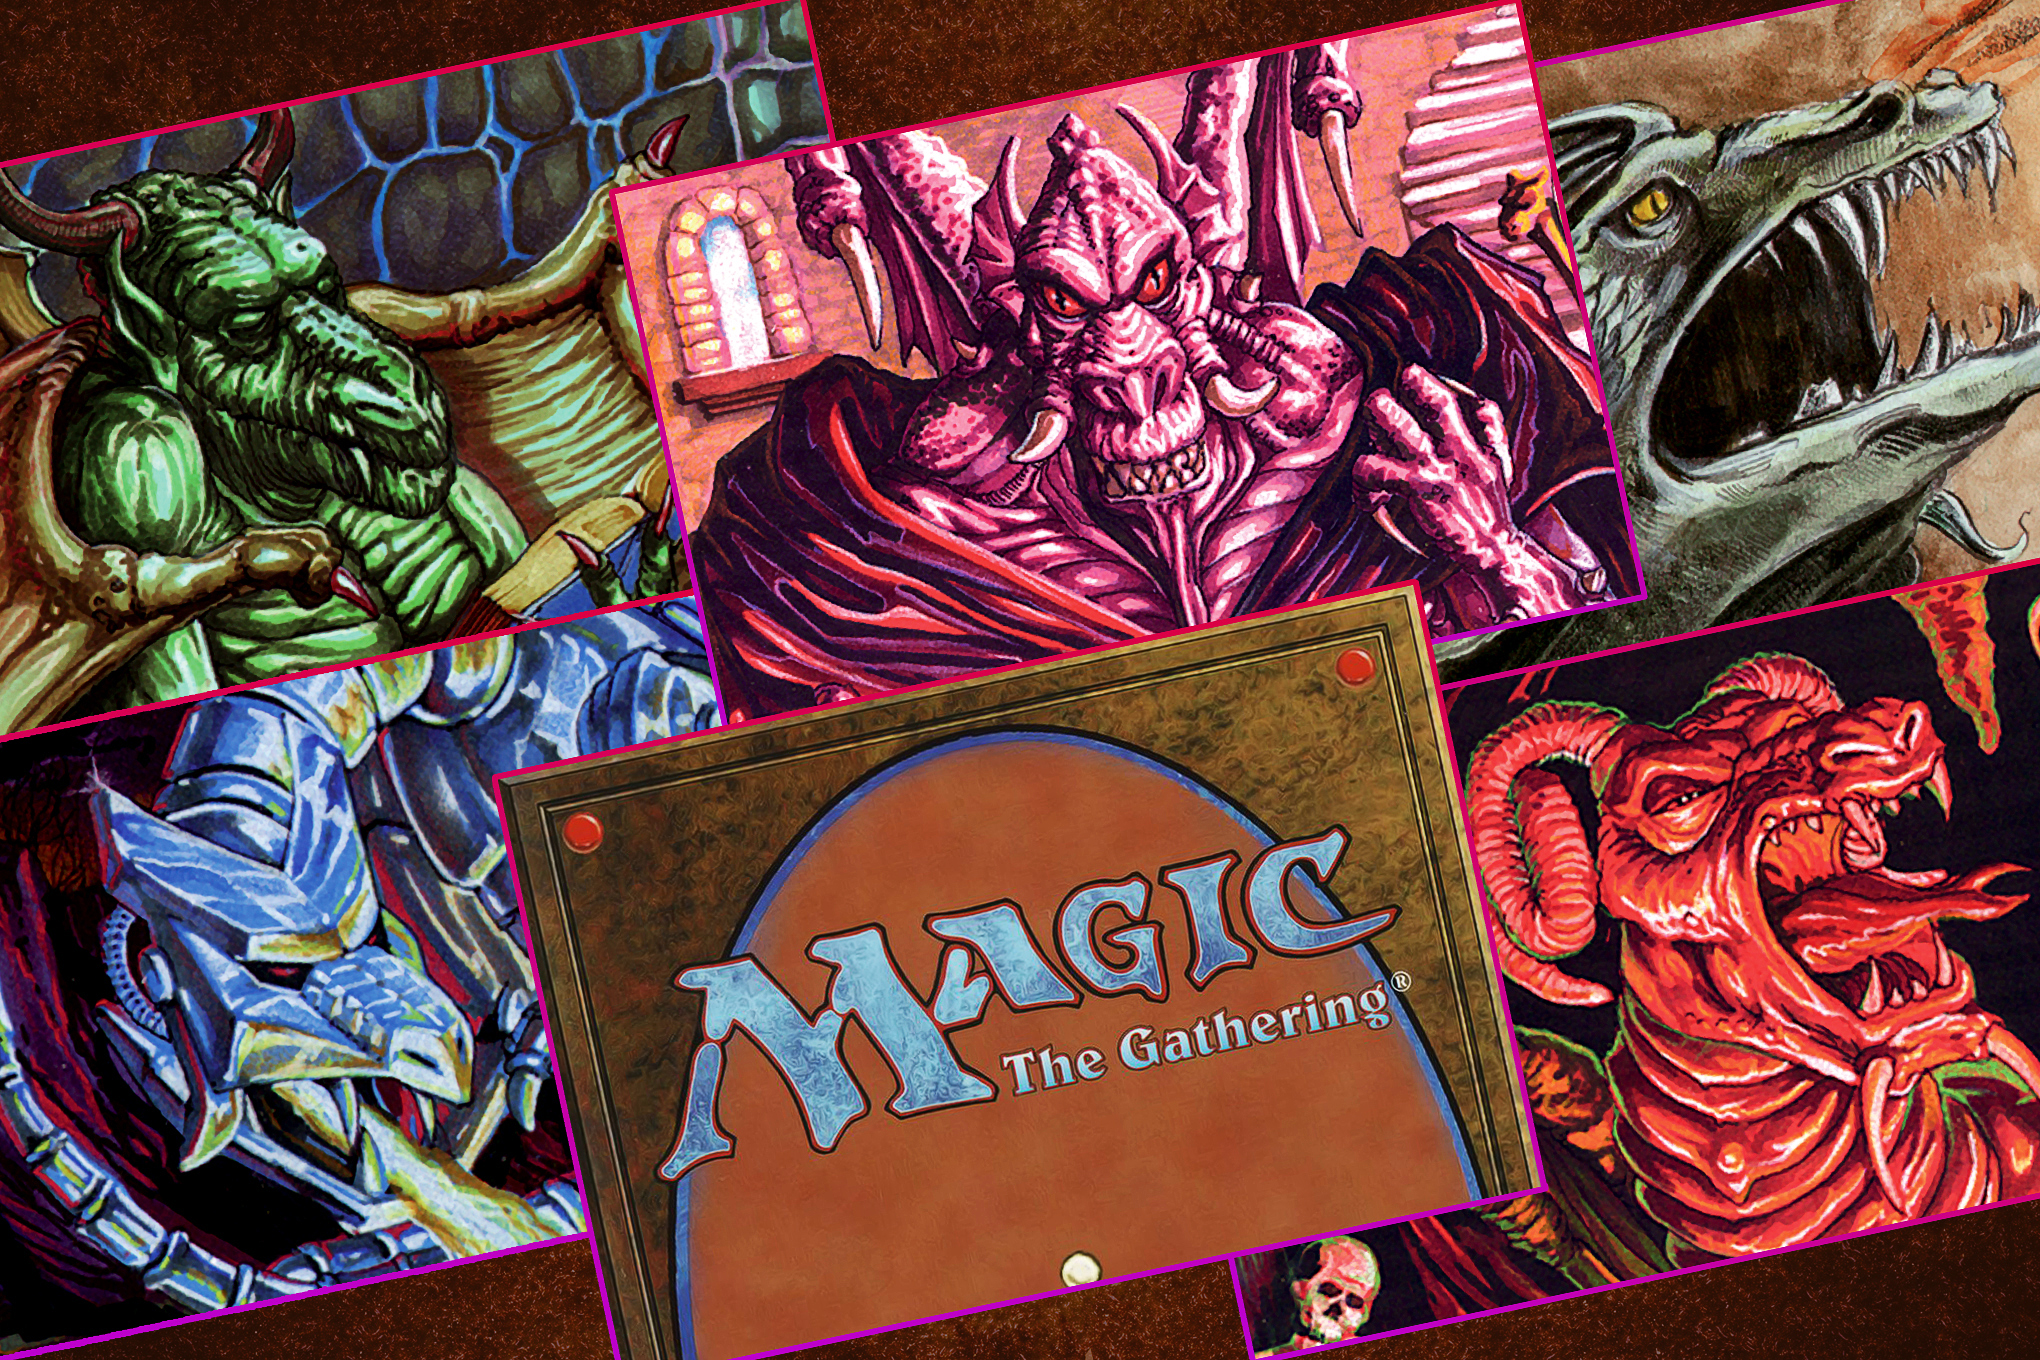 Graphic featuring five dragons from the board game Magic The Gathering